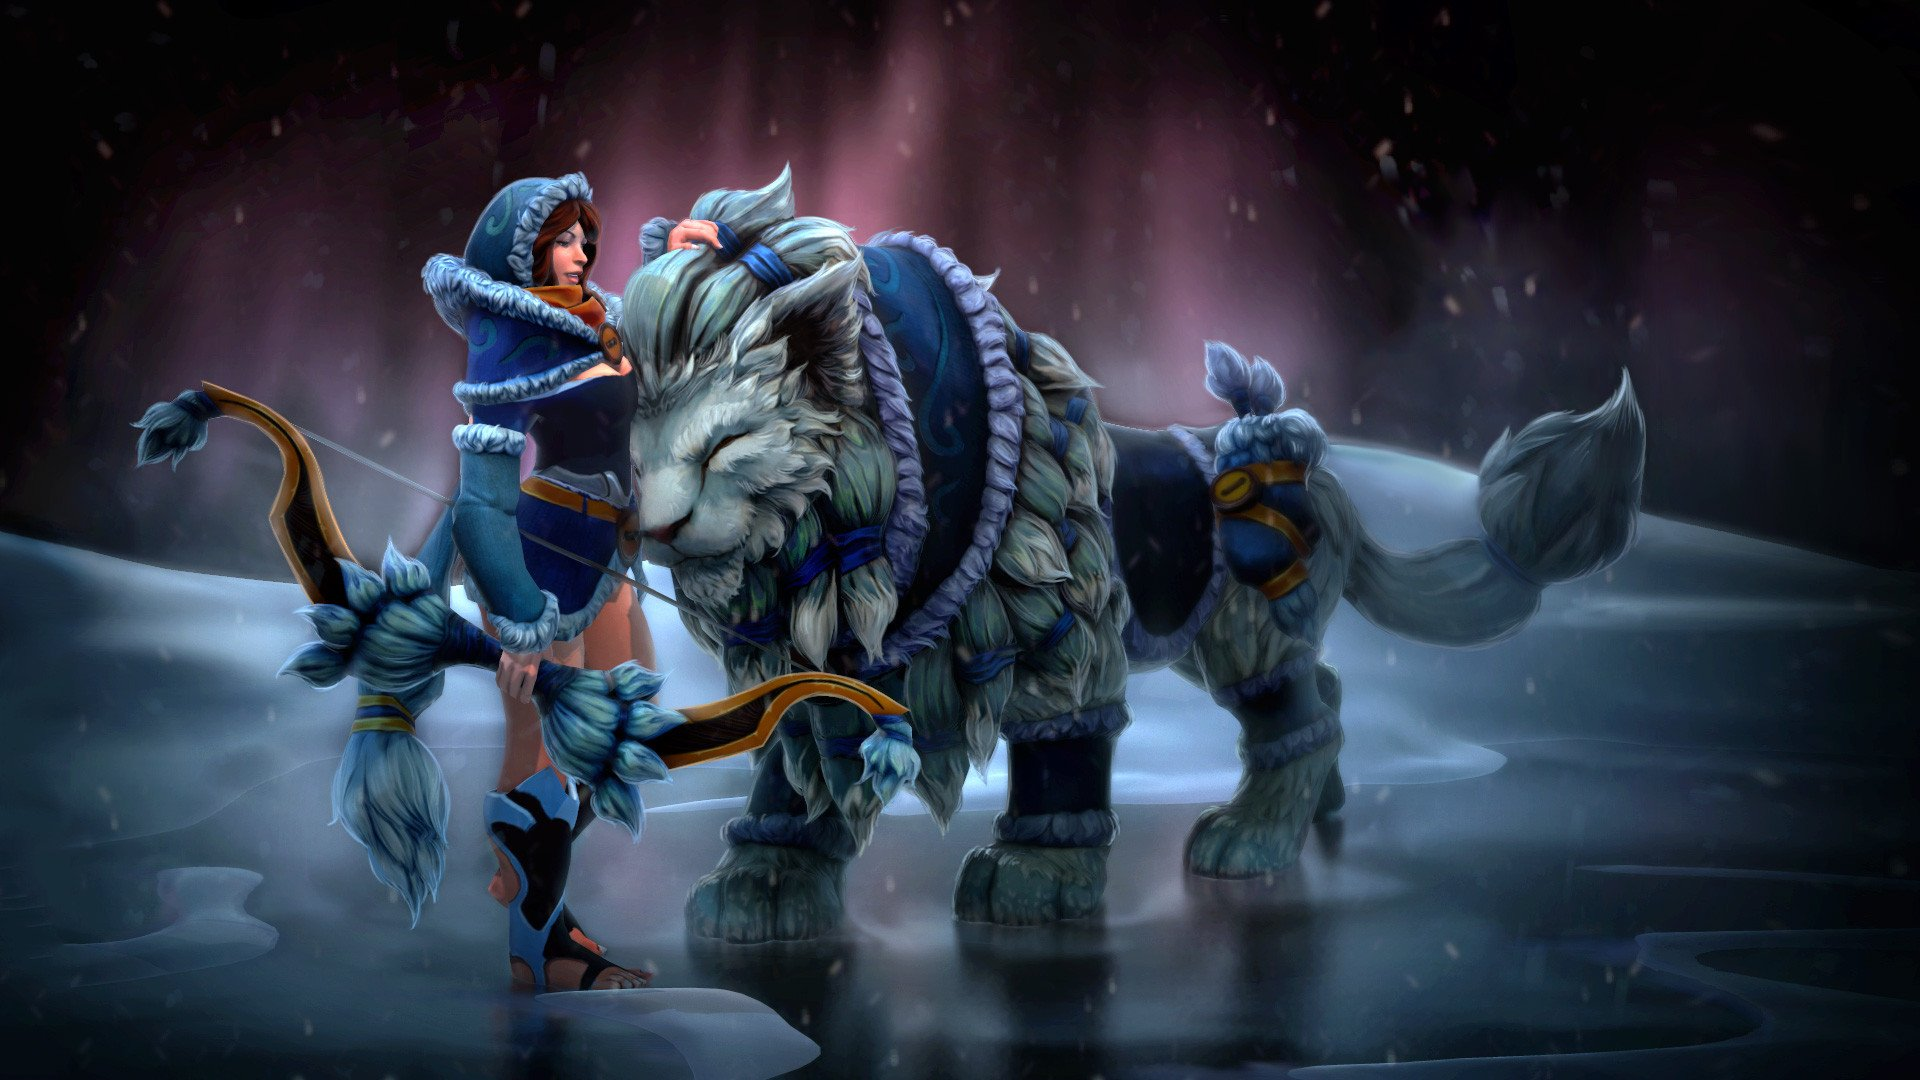 Video Game - DotA 2  Lion Mirana (Dota 2) Pet Bow Winter Woman Warrior Girl Woman Fantasy Wallpaper